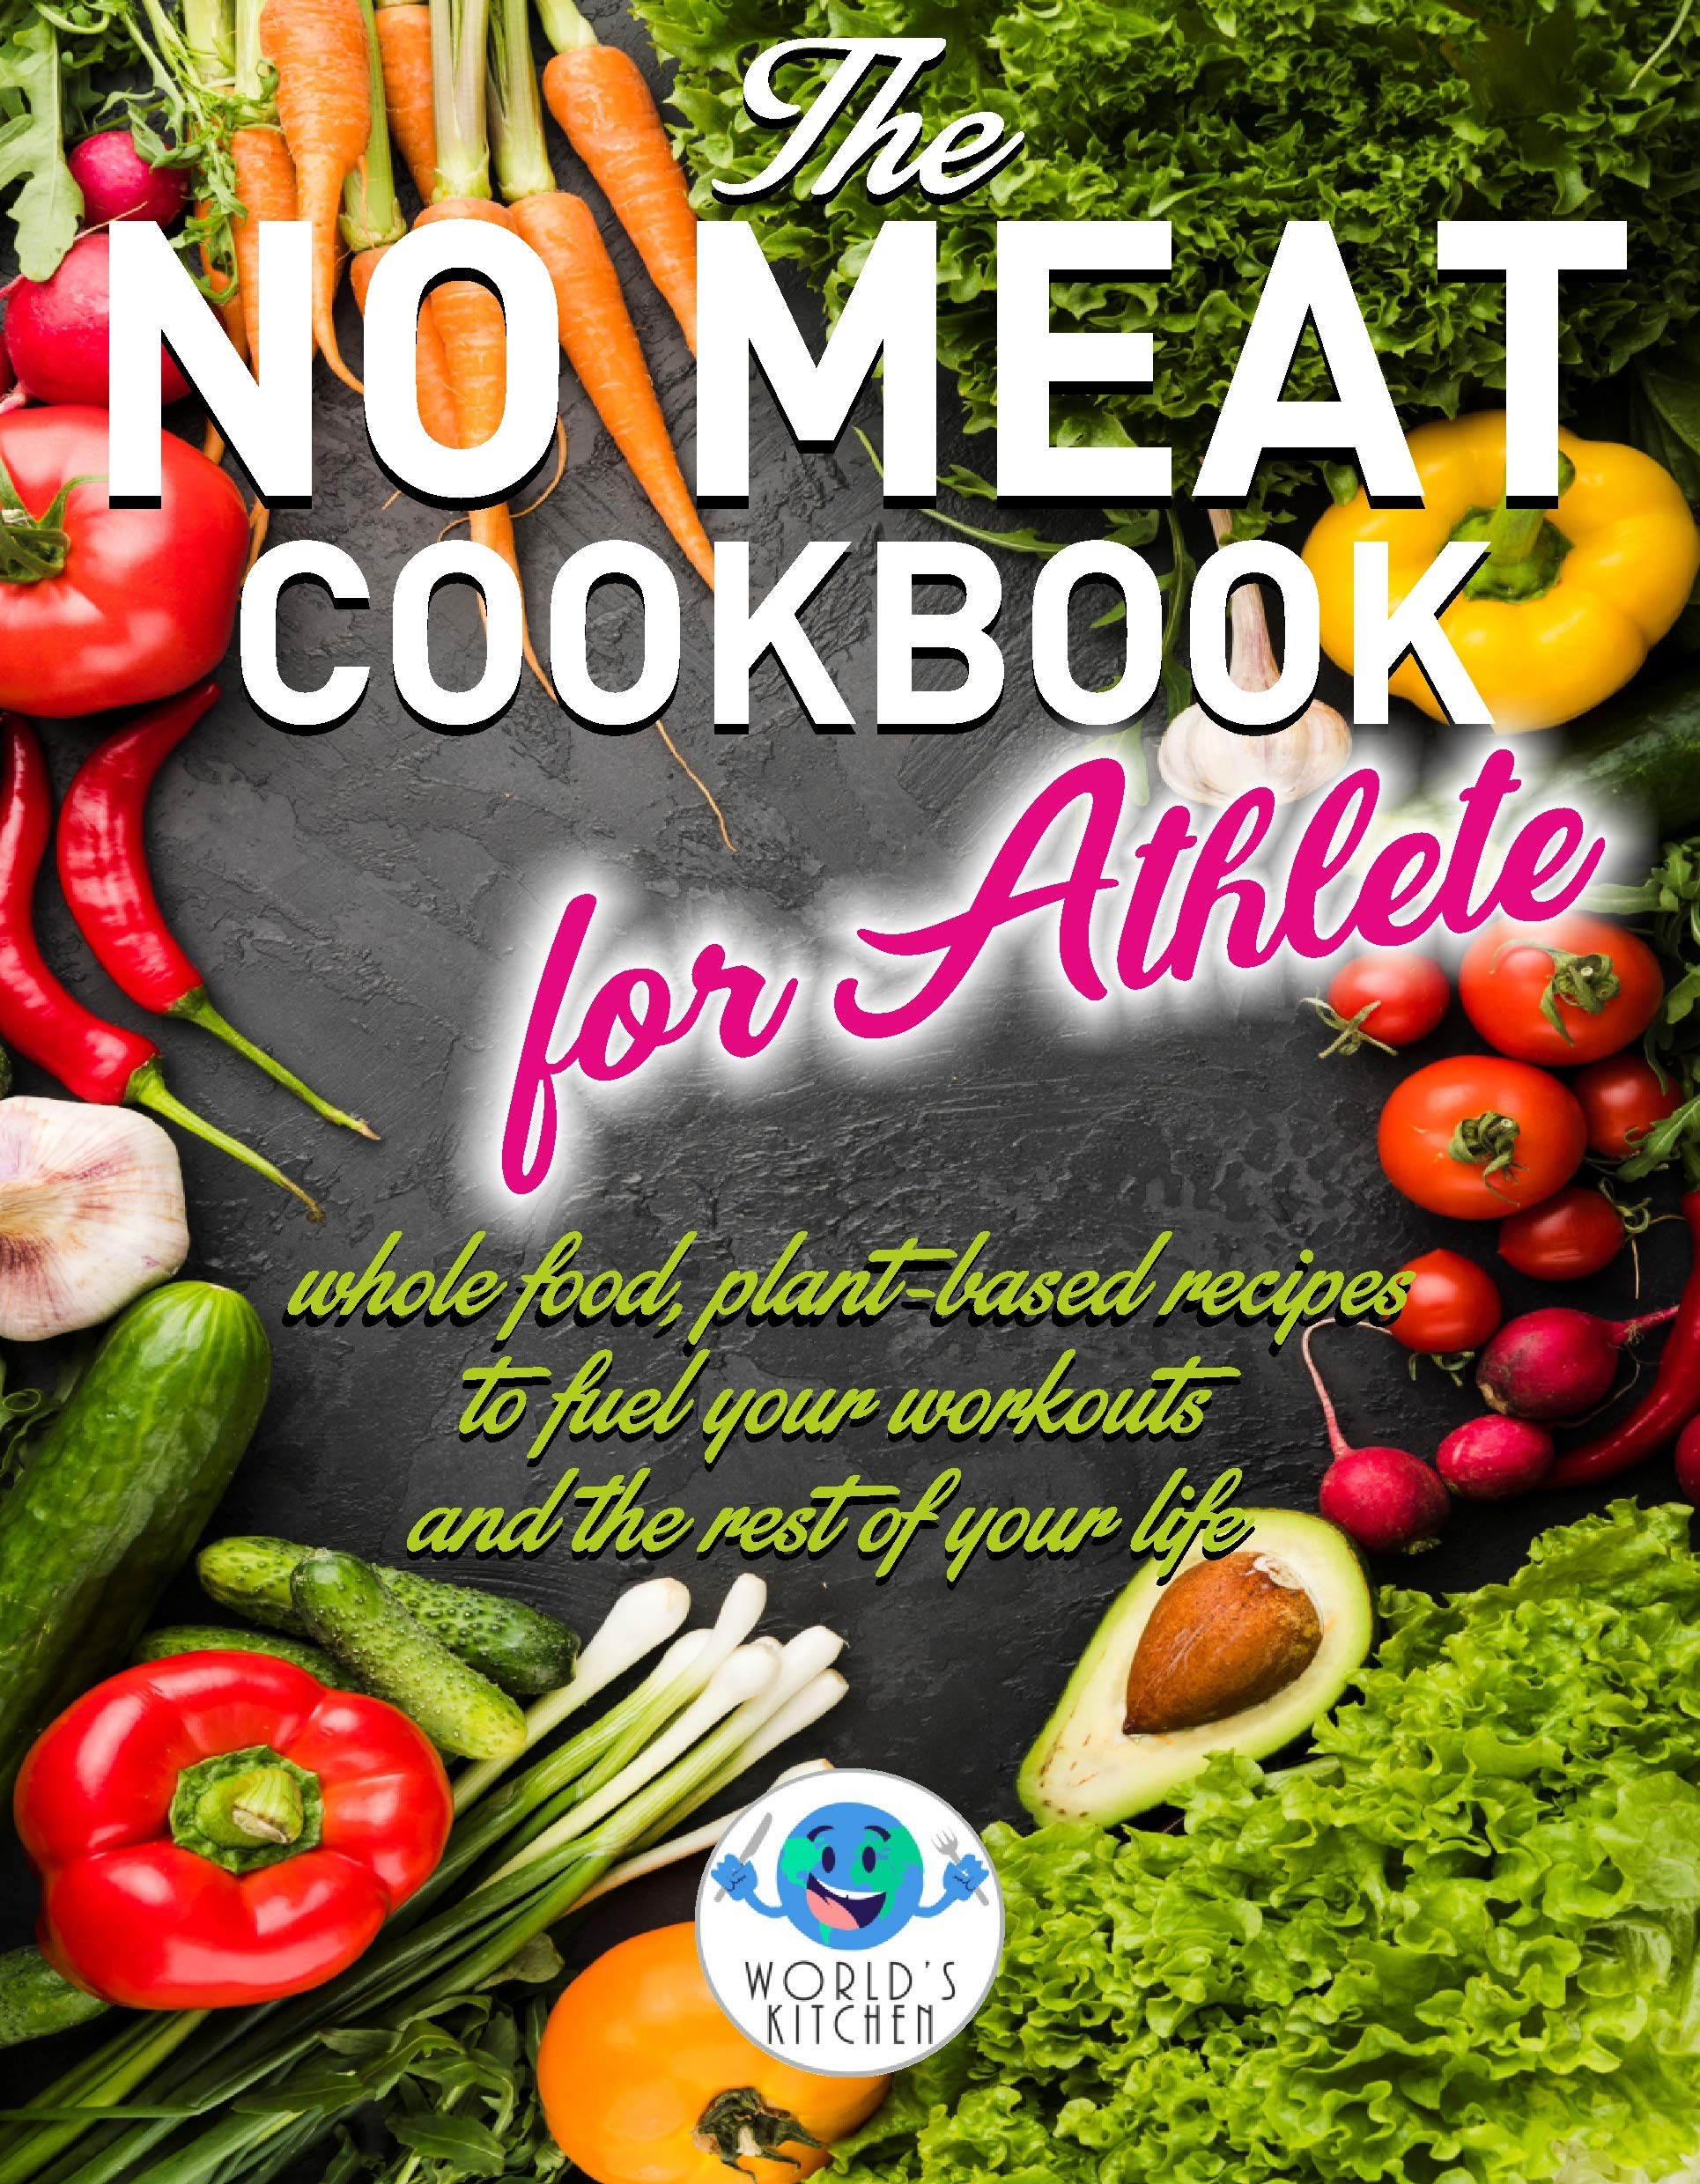 The NO MEAT COOKBOOK for Athlete: Whole Food, Plant-Based Recipes to Fuel Your Workout and the Rest of Your Life (Food From the World 1)